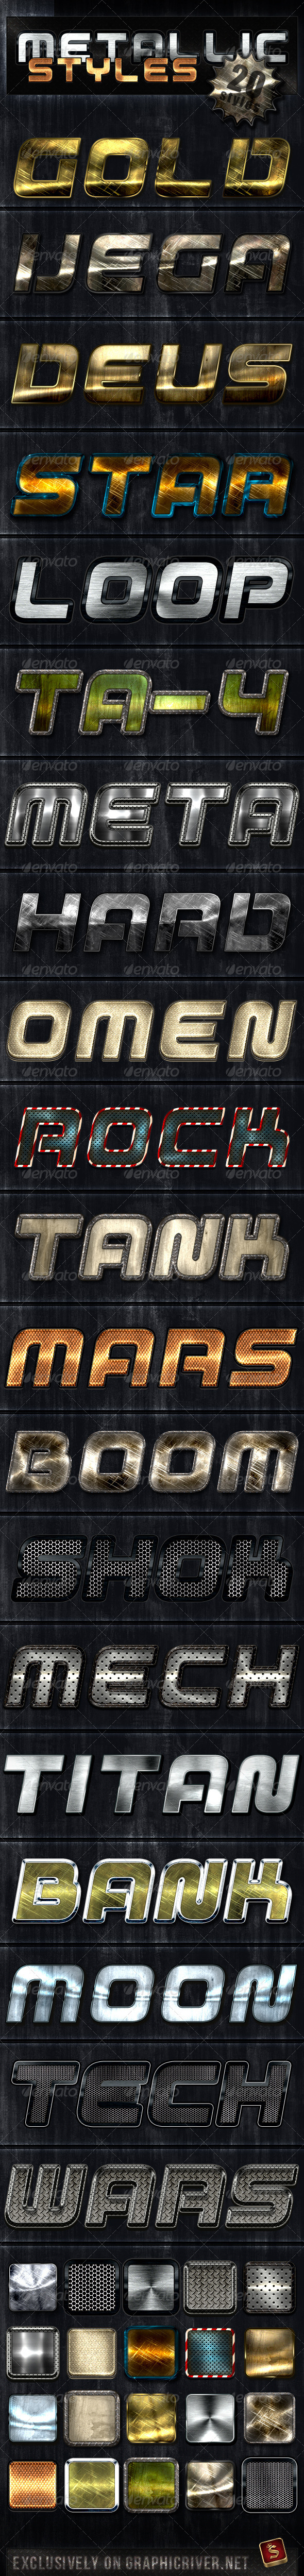 Unique Metallic Styles - Text Effects Styles